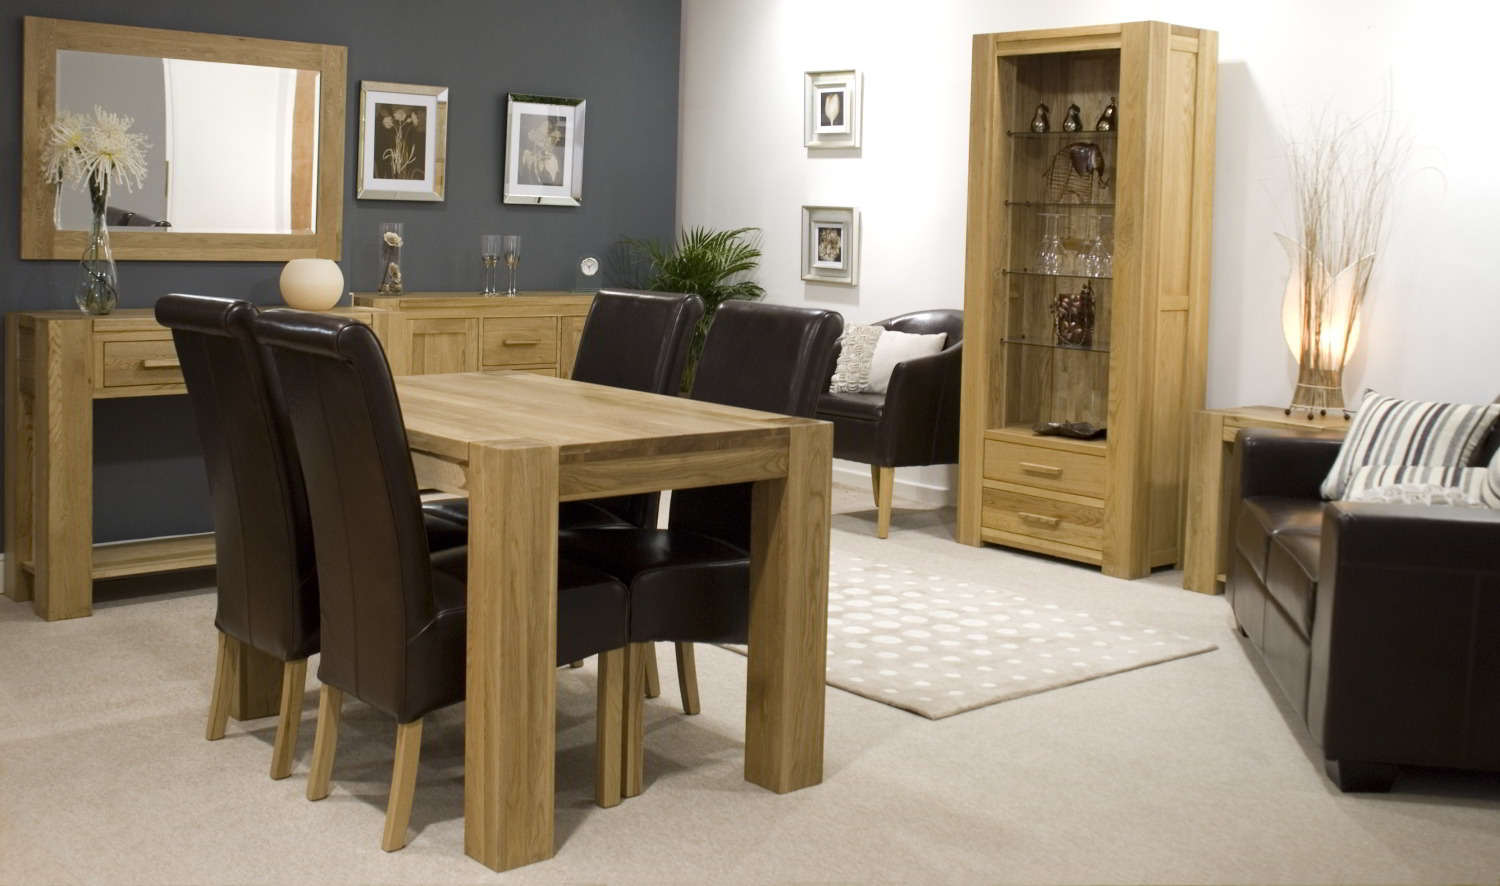 Pemberton solid oak furniture small living room office for Living hall furniture